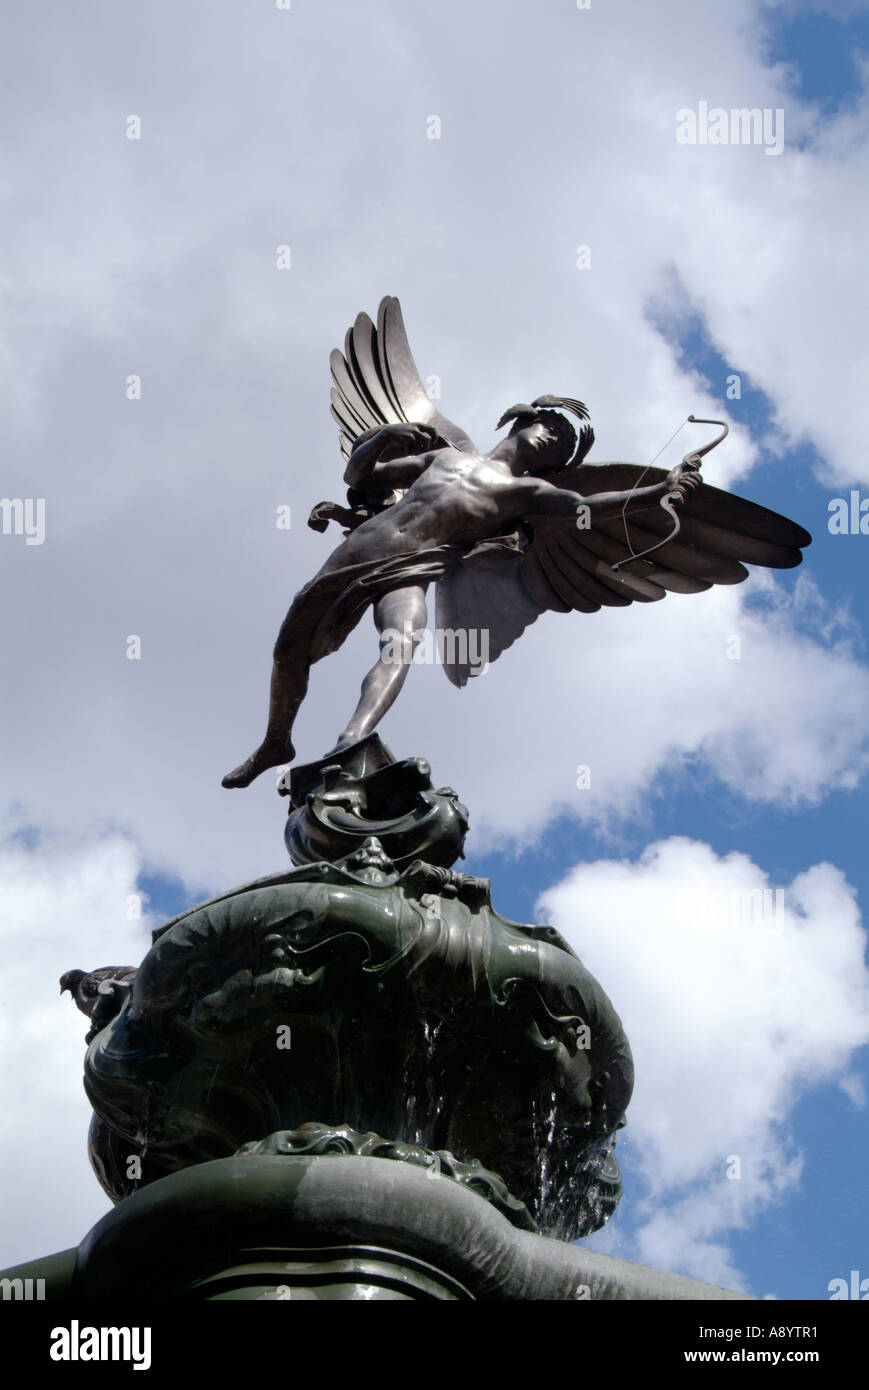 Statue of eros eros the pagan god of love designed in statue of eros eros the pagan god of love designed in the 19th century as a symbol of christian charity pi biocorpaavc Images